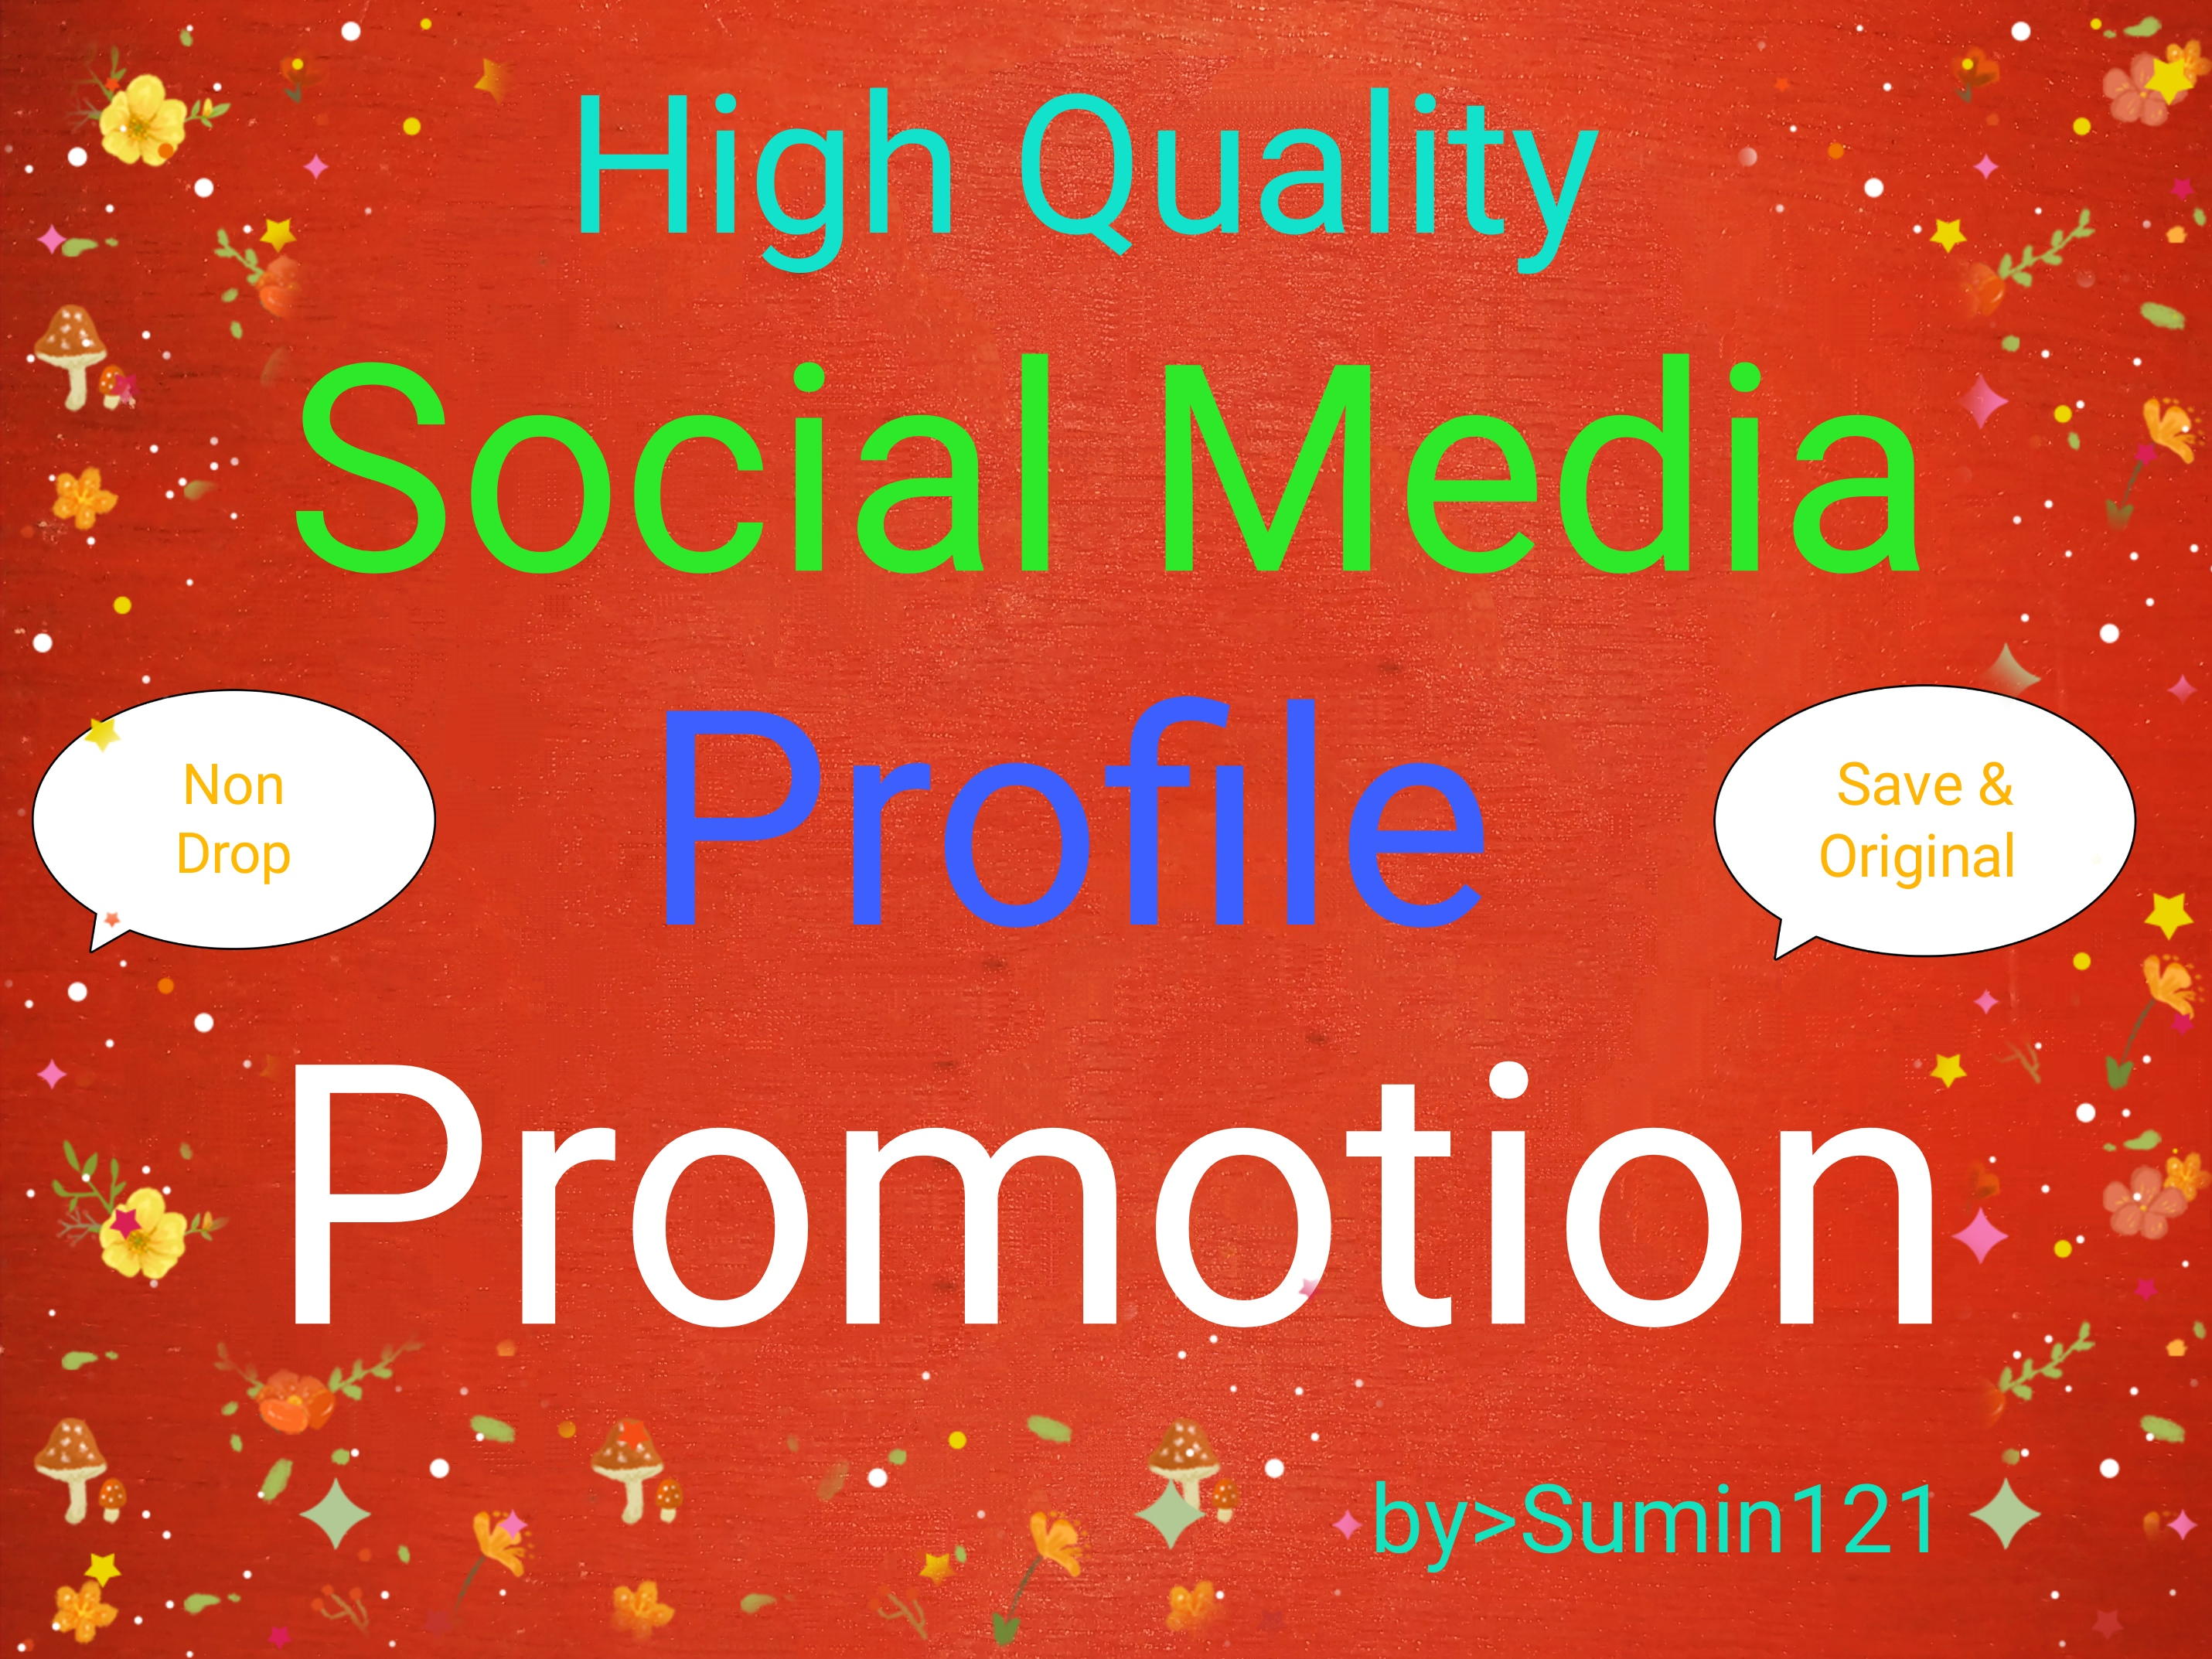 High quality real audience and social media service Super fast